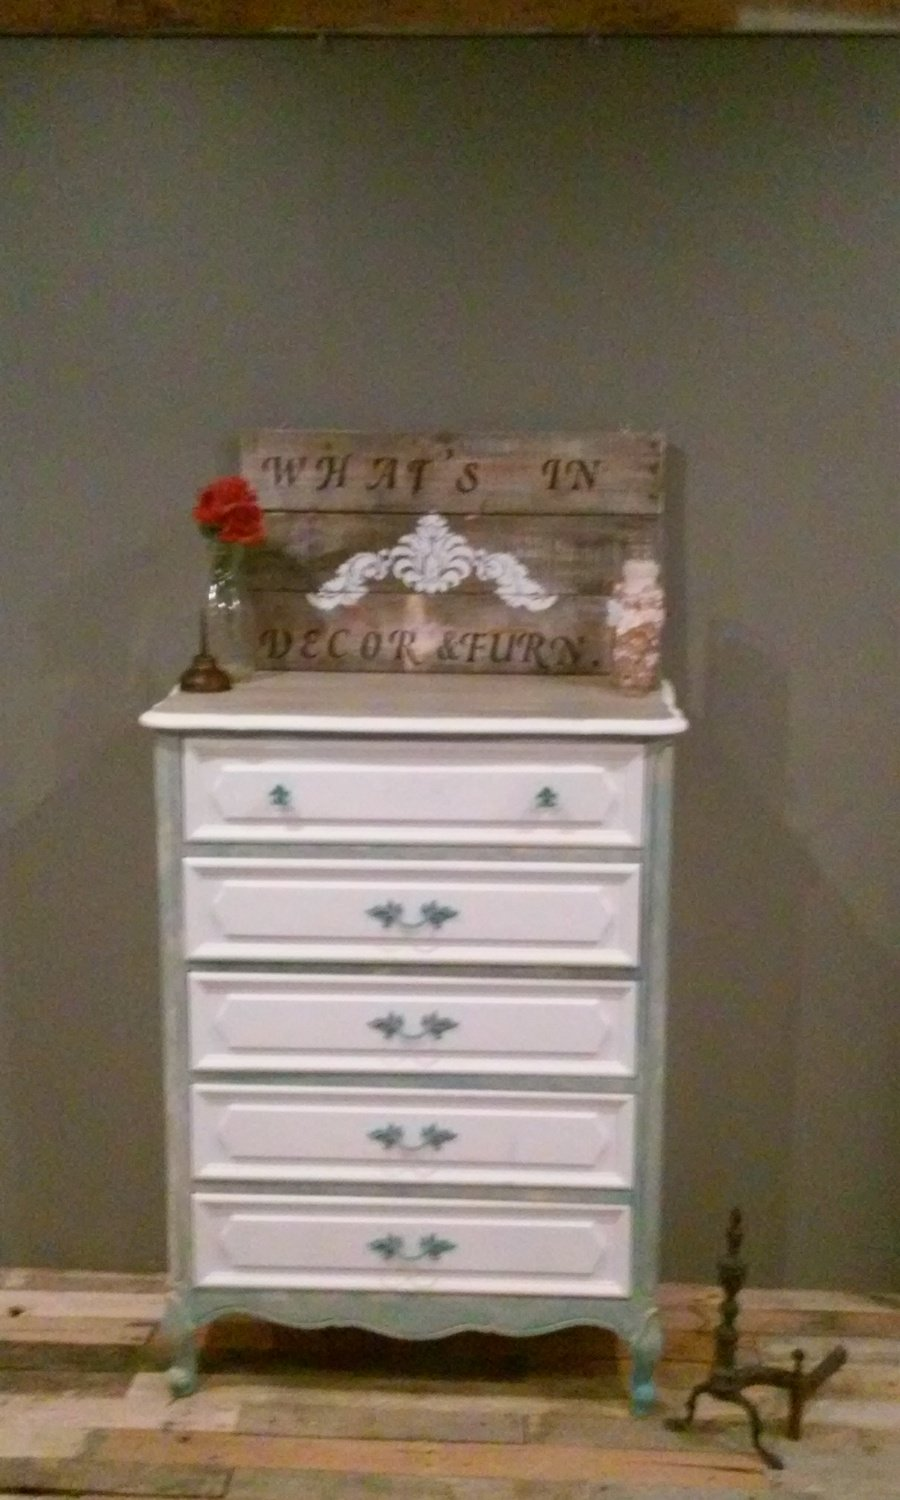 I have henry link girls bedroom furniture i would like to sell and no idea my antique